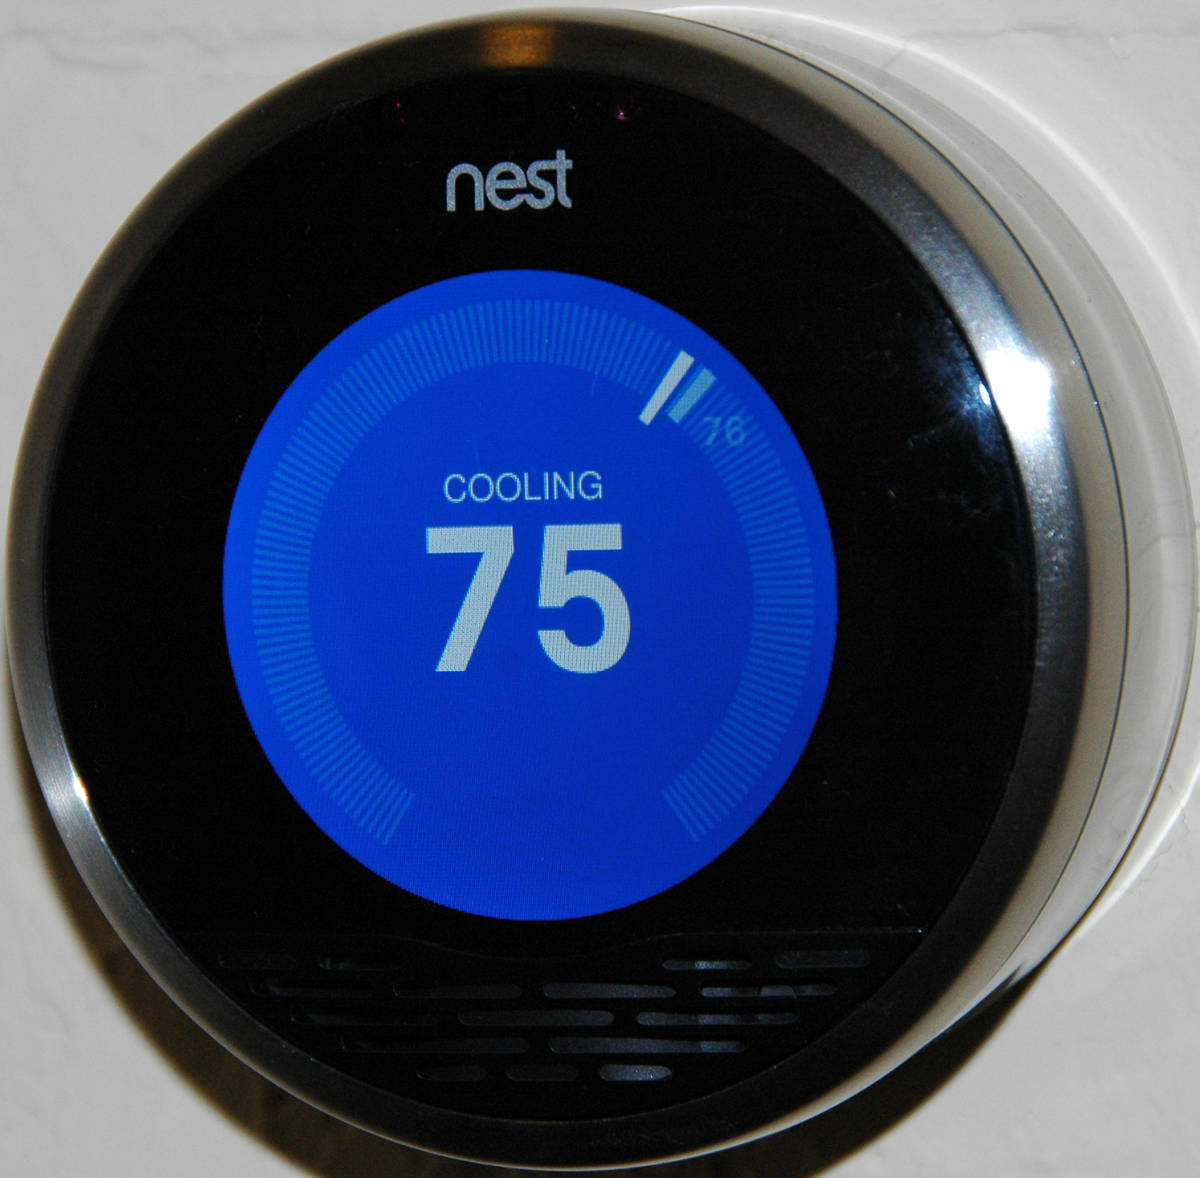 nest learning thermostat wikipedia. Black Bedroom Furniture Sets. Home Design Ideas